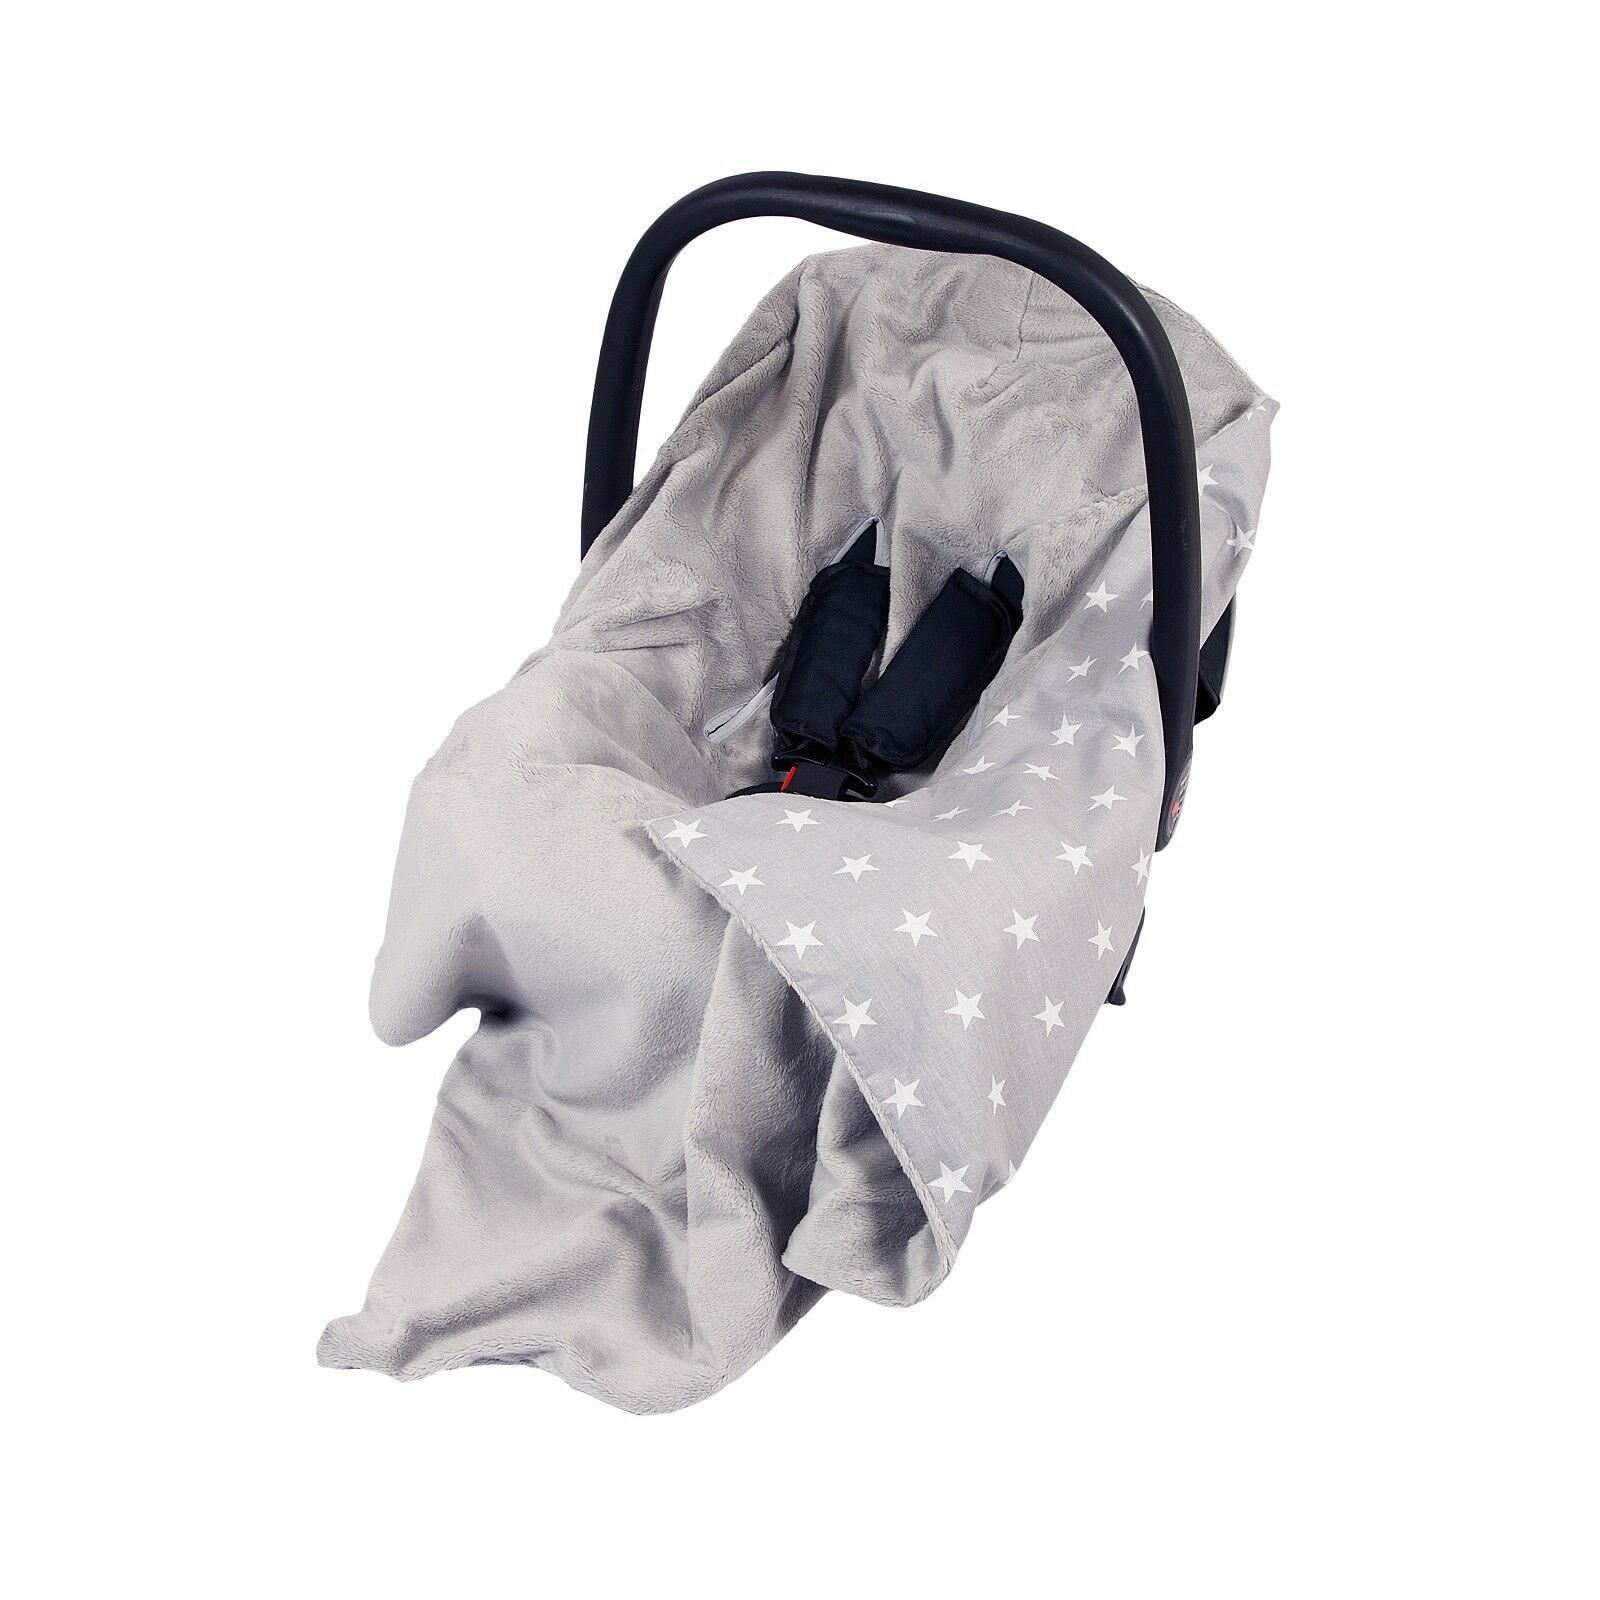 New Car Seat Baby Wrap Travel Wrap Car Seat Blanket Grey